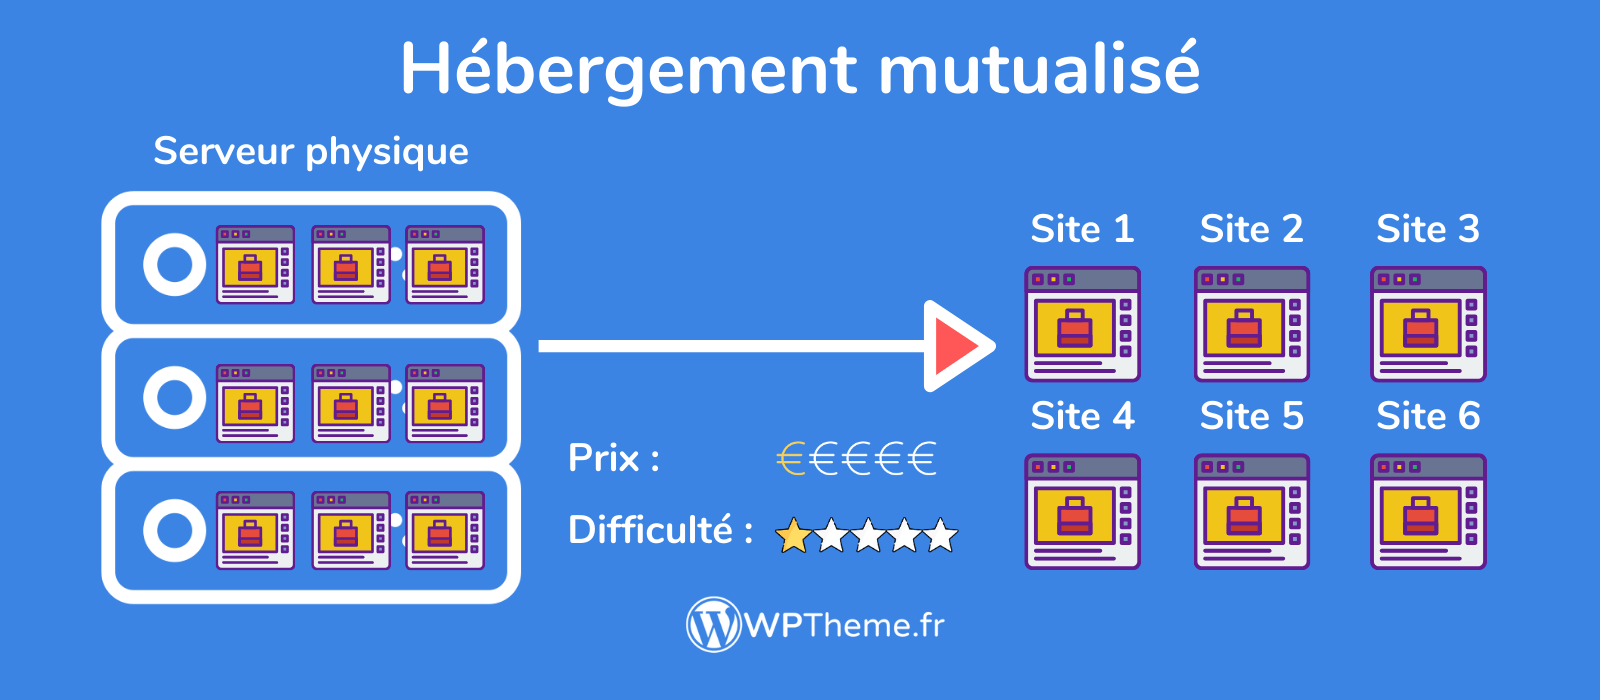 hebergement-mutualise-wordpress